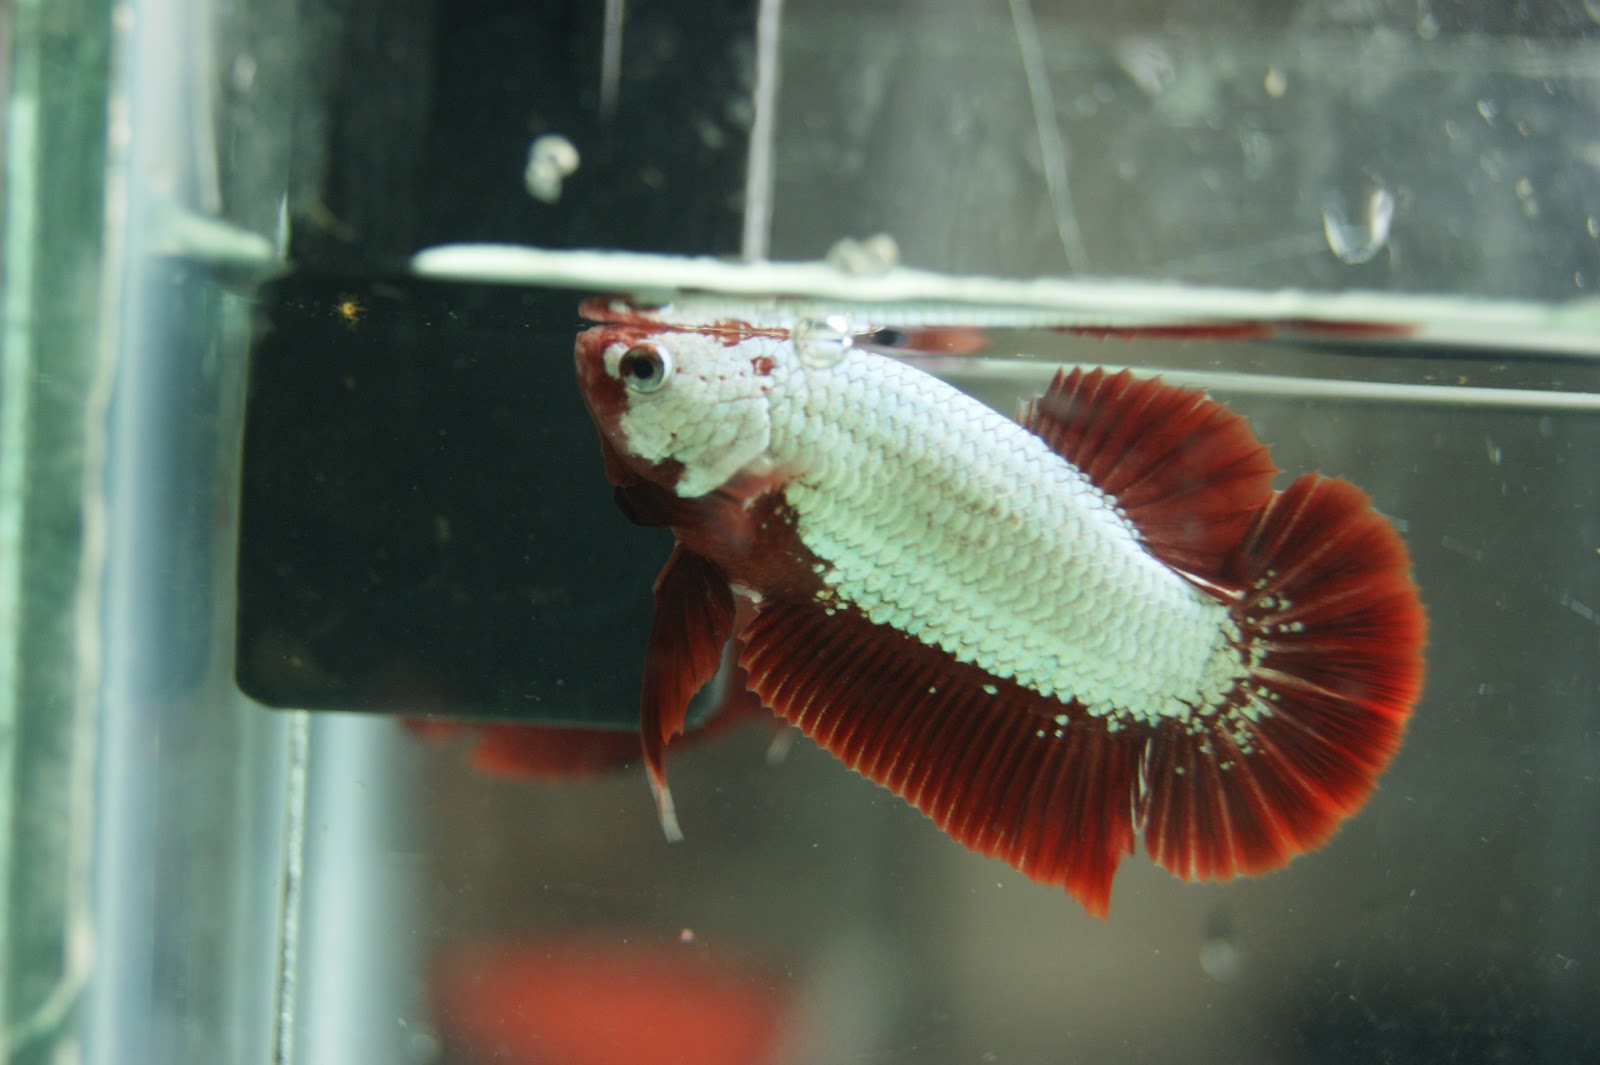 Live betta fish for sale online joy studio design for Dragon fish for sale